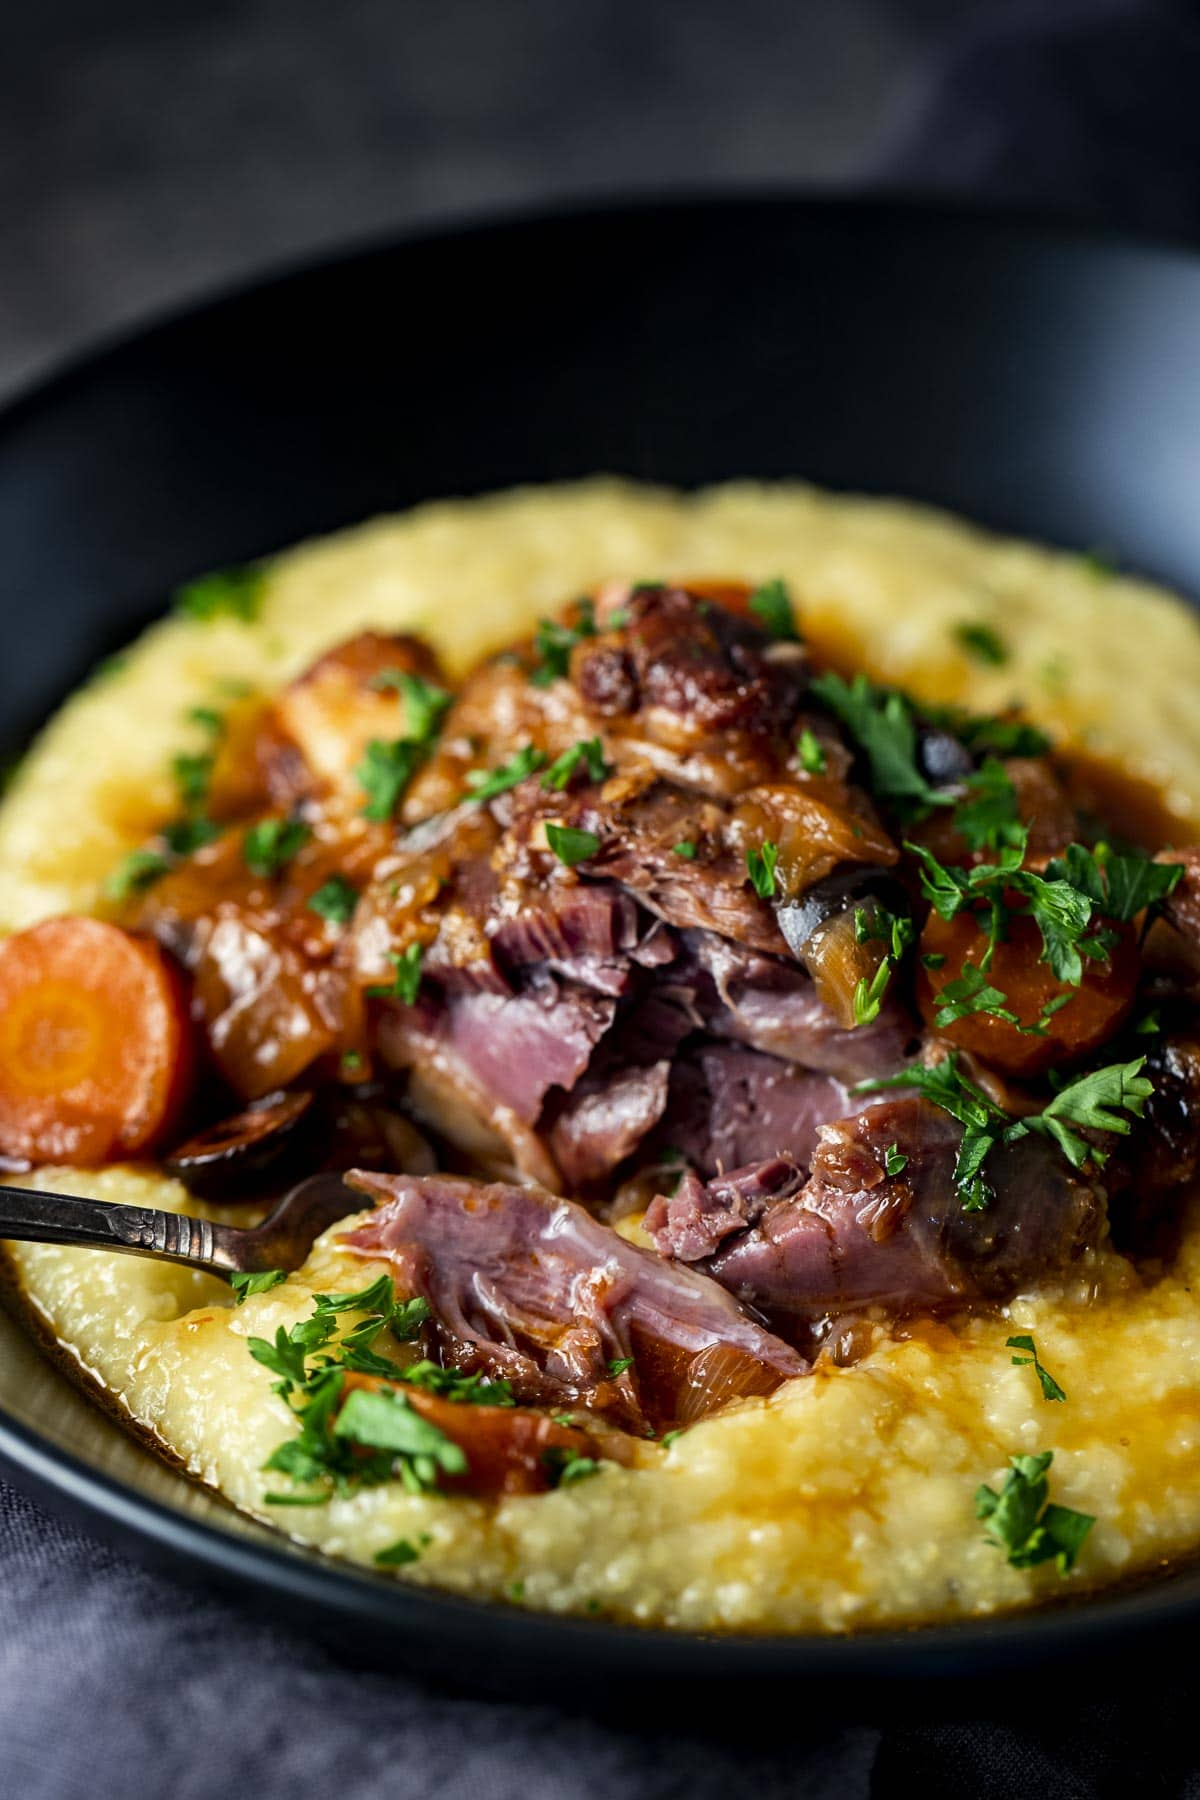 Lamb shank served in a bowl on top of creamy polenta.